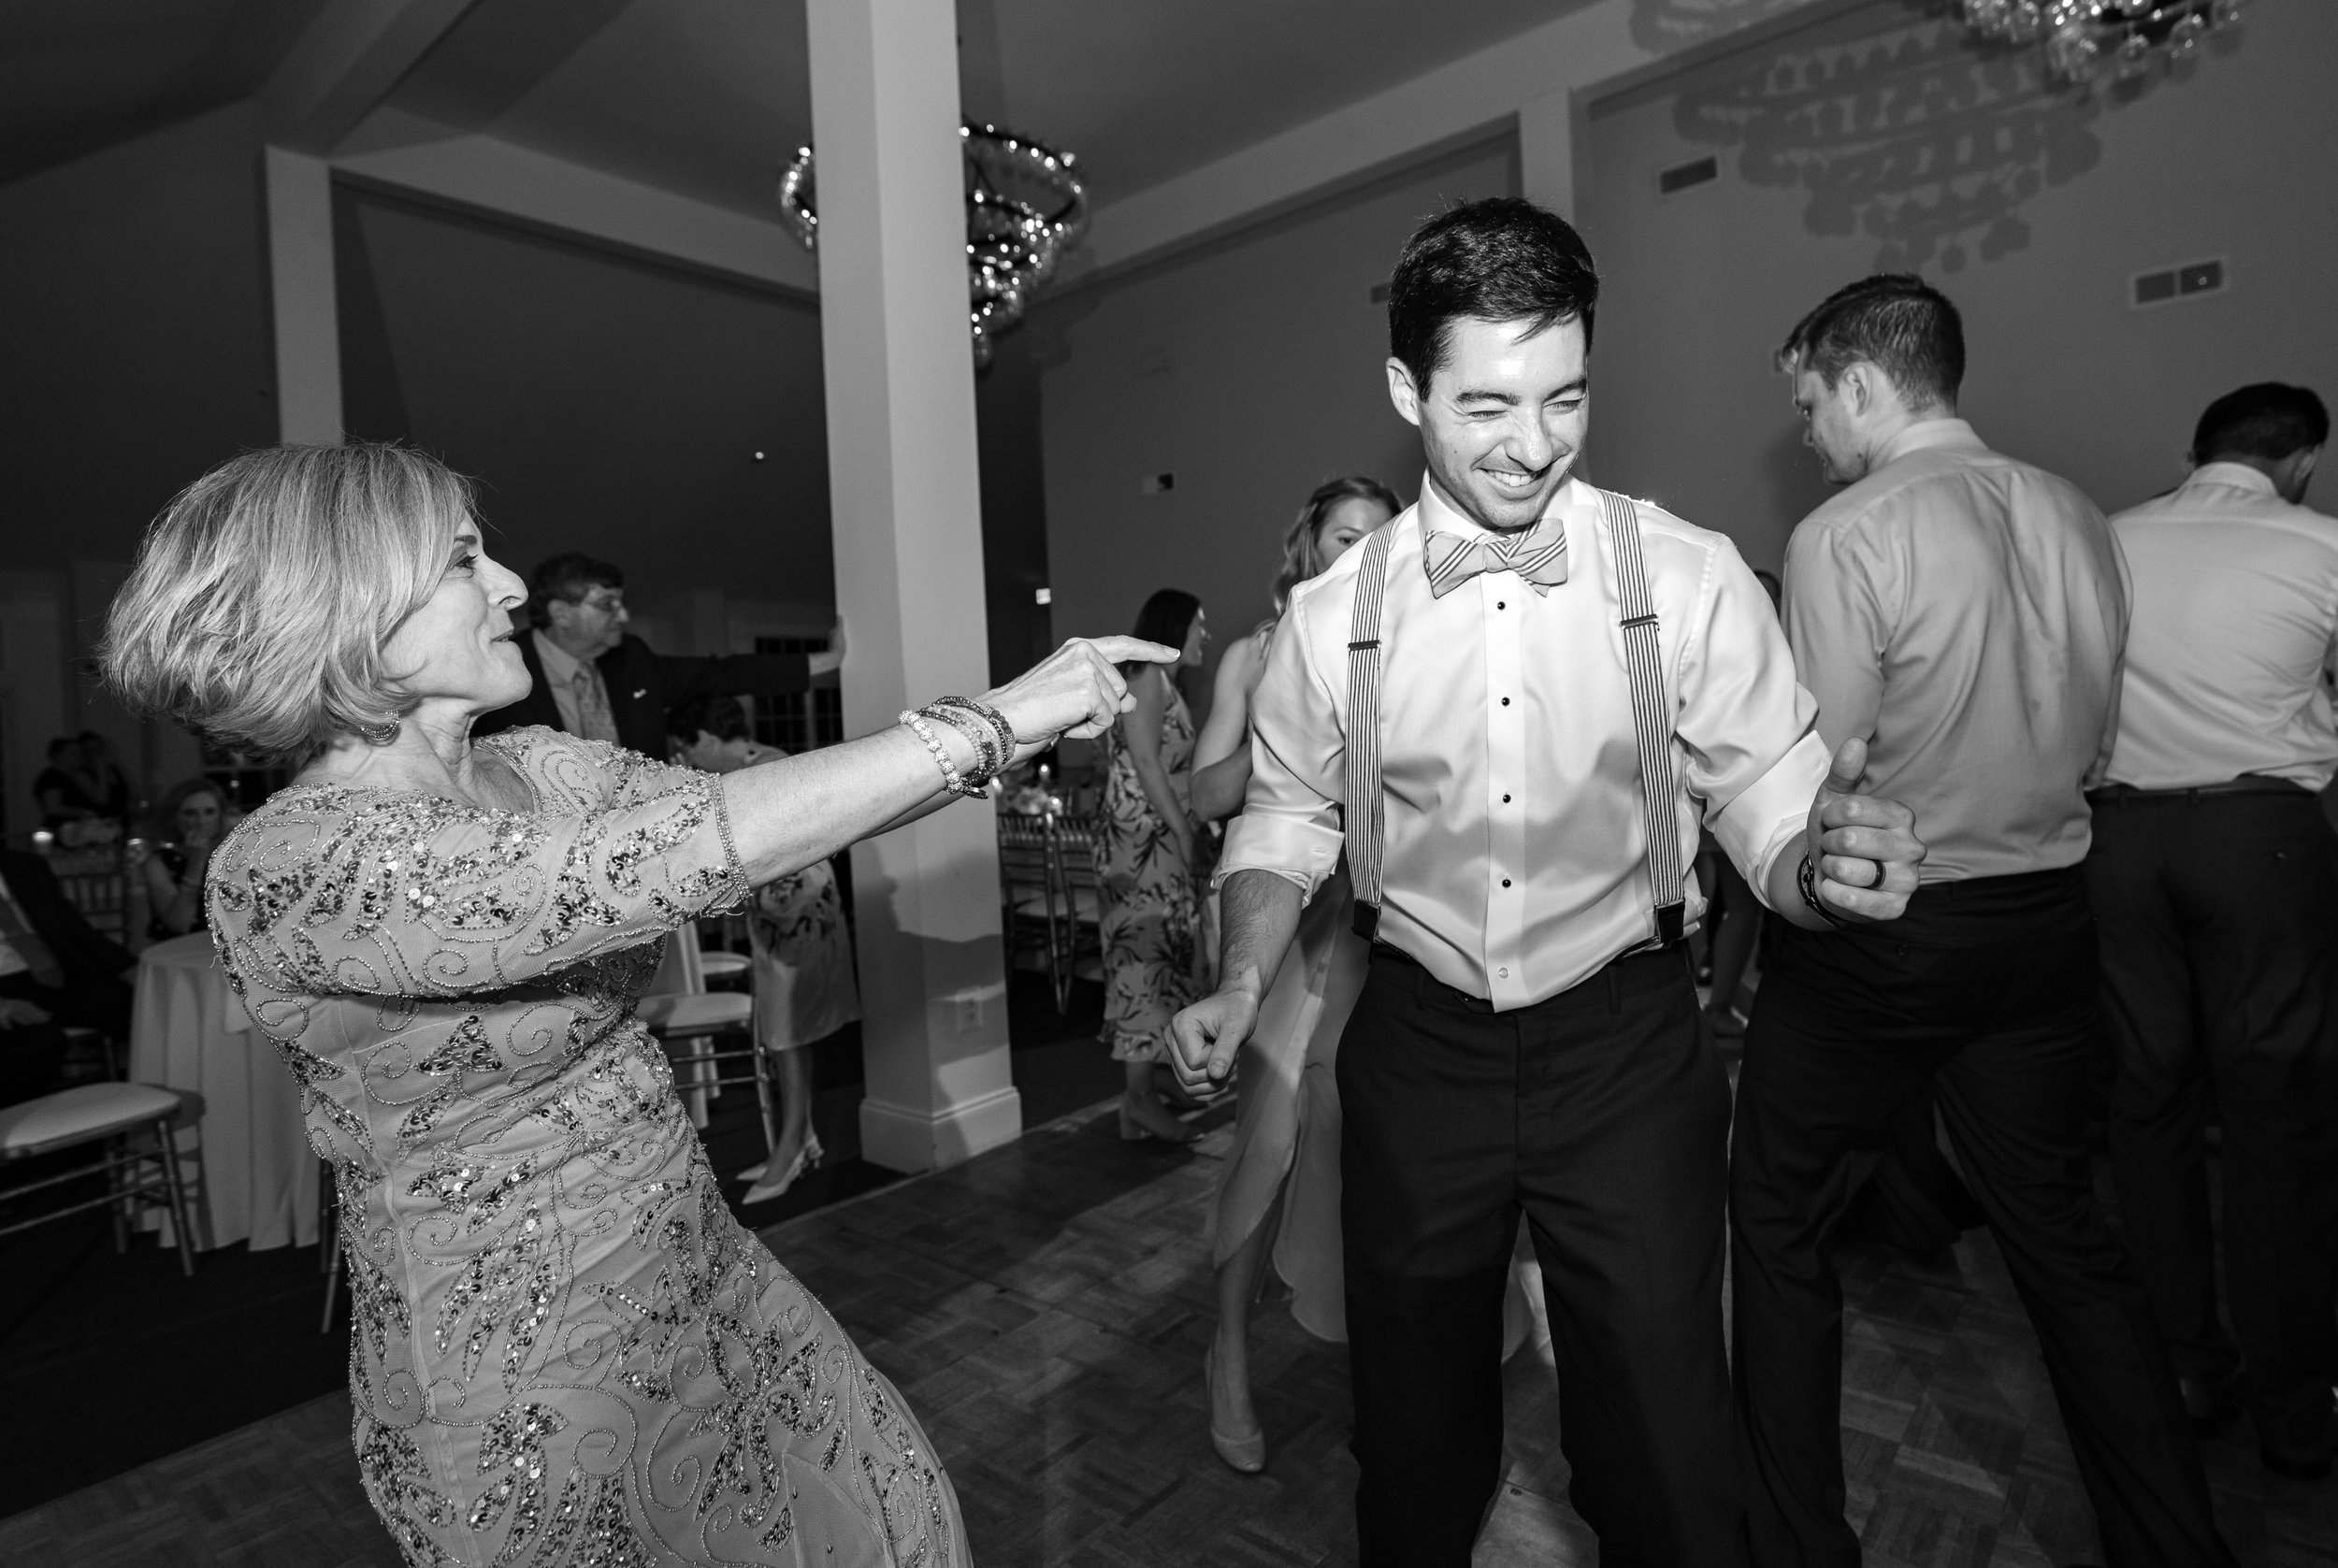 Mother son upbeat dance during wedding reception